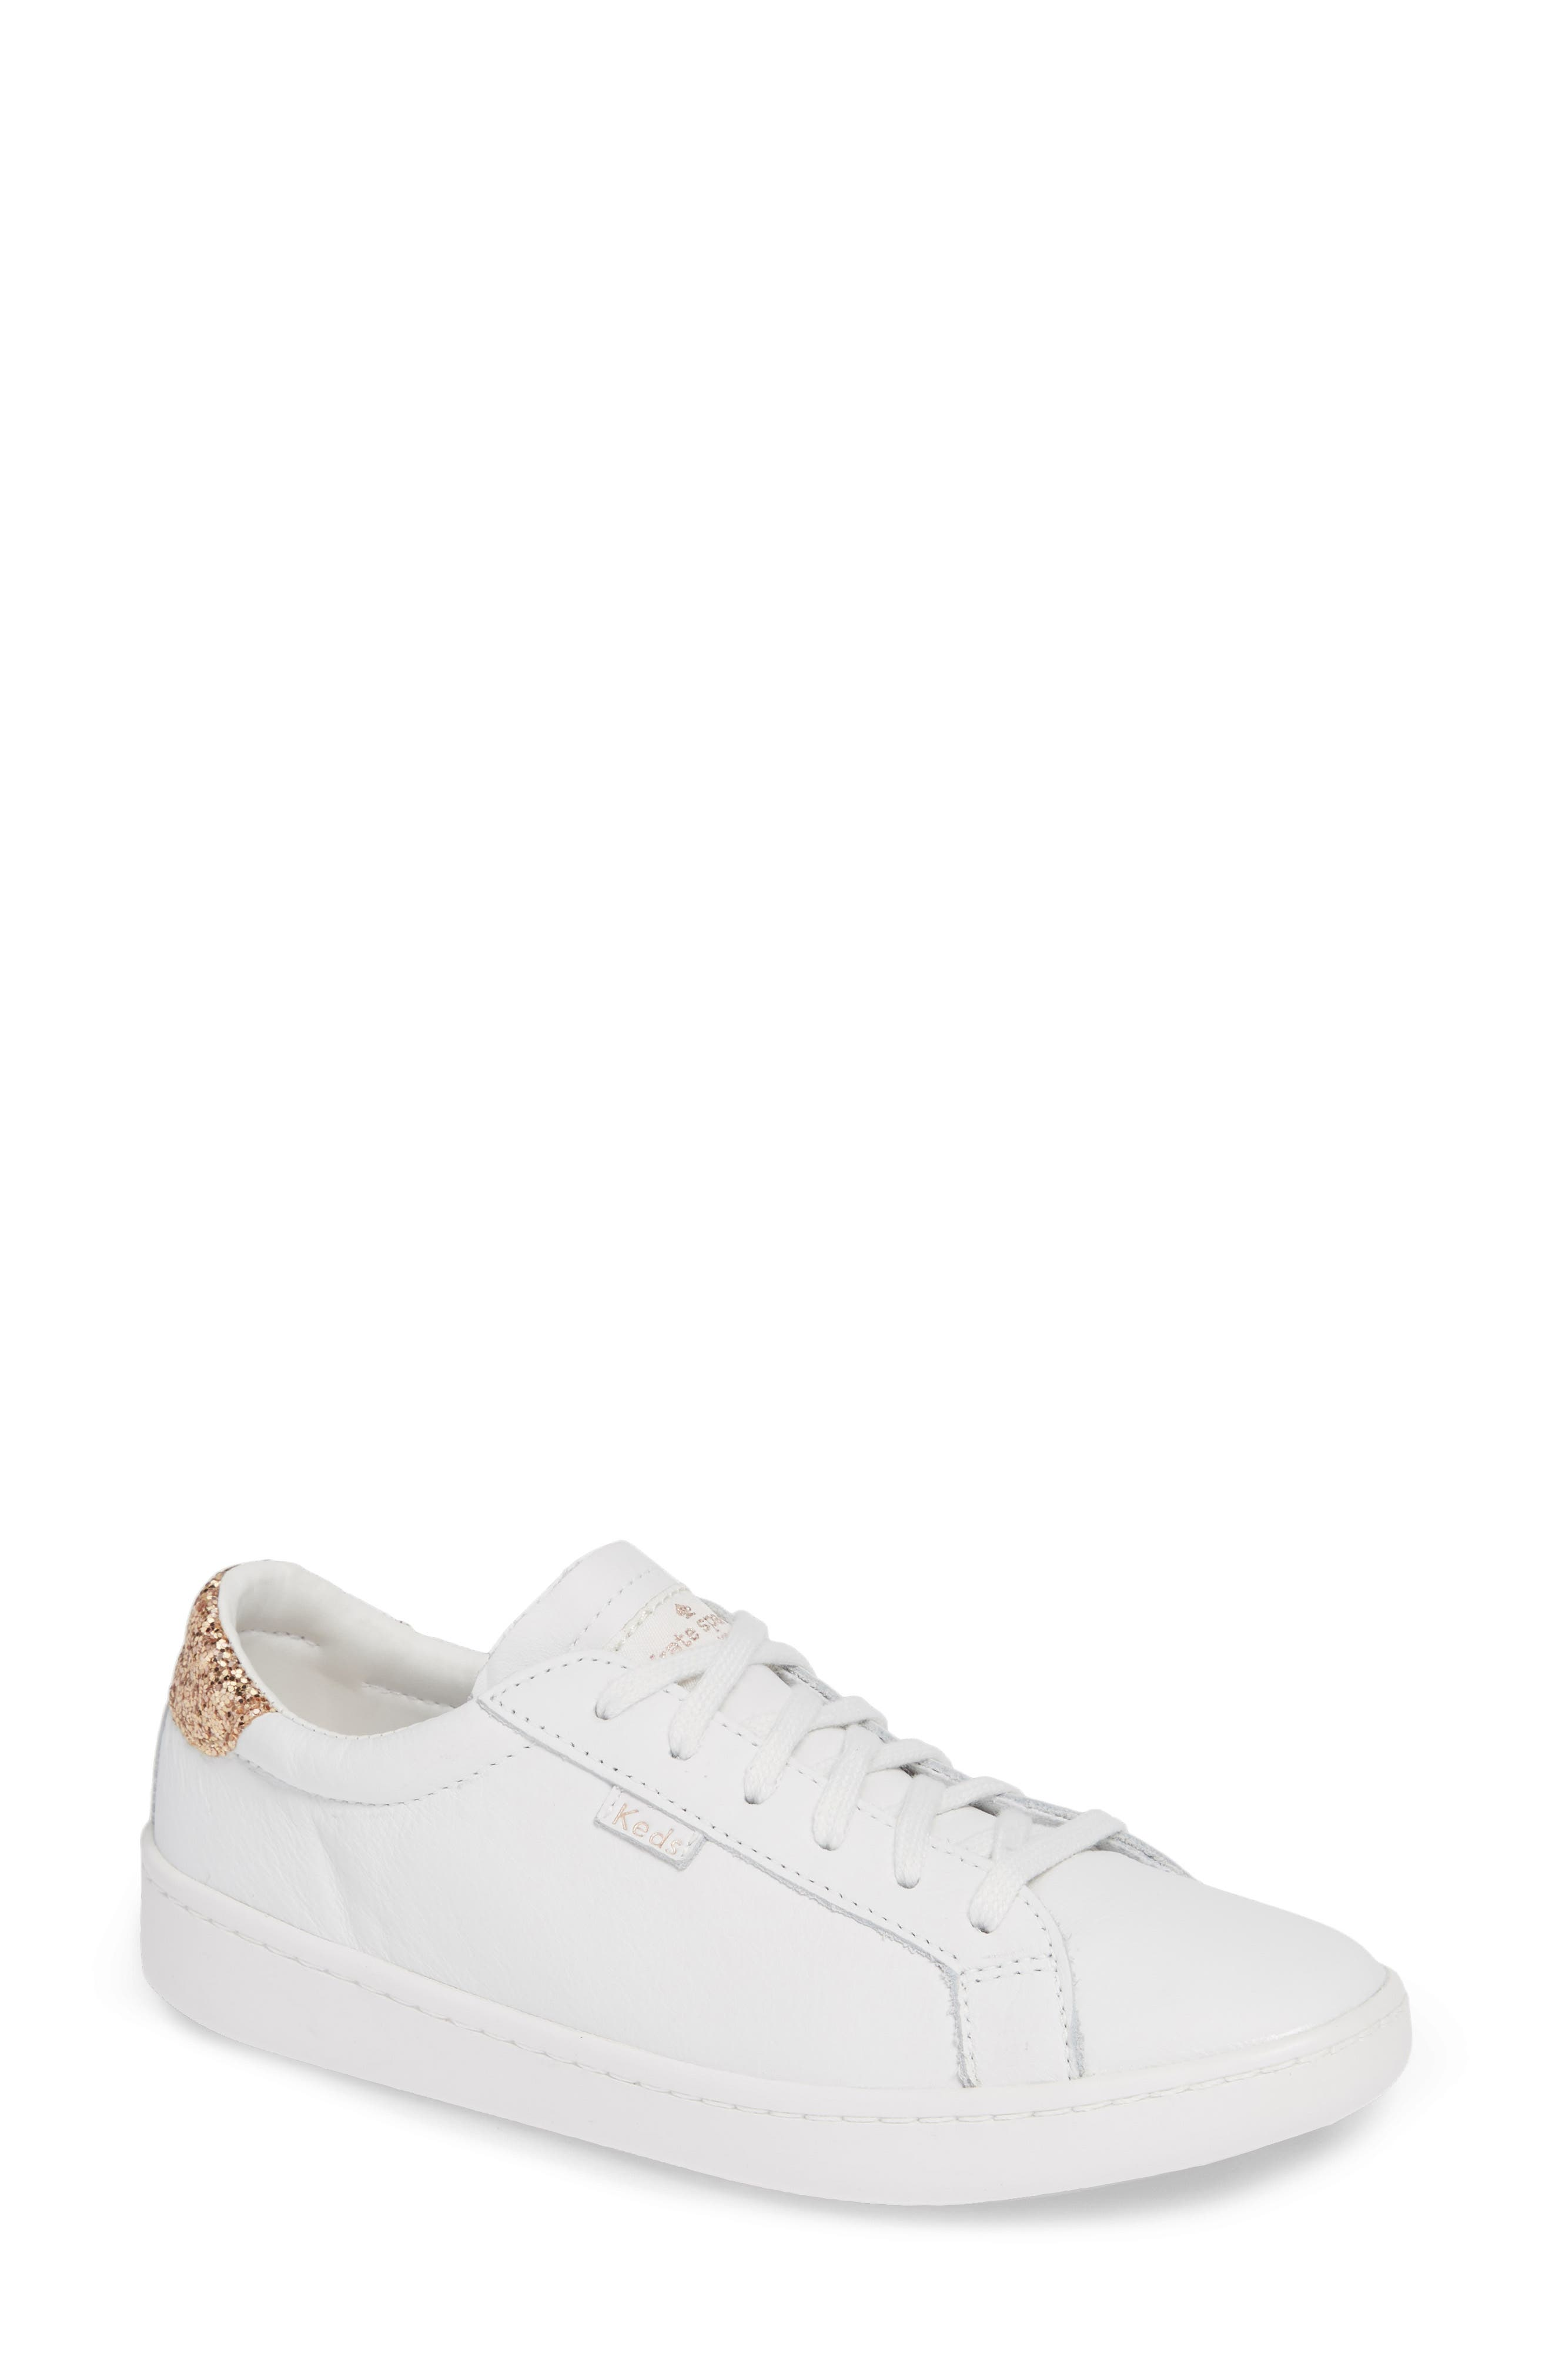 KEDS<SUP>®</SUP> FOR KATE SPADE NEW YORK, ace glitter sneaker, Main thumbnail 1, color, 100